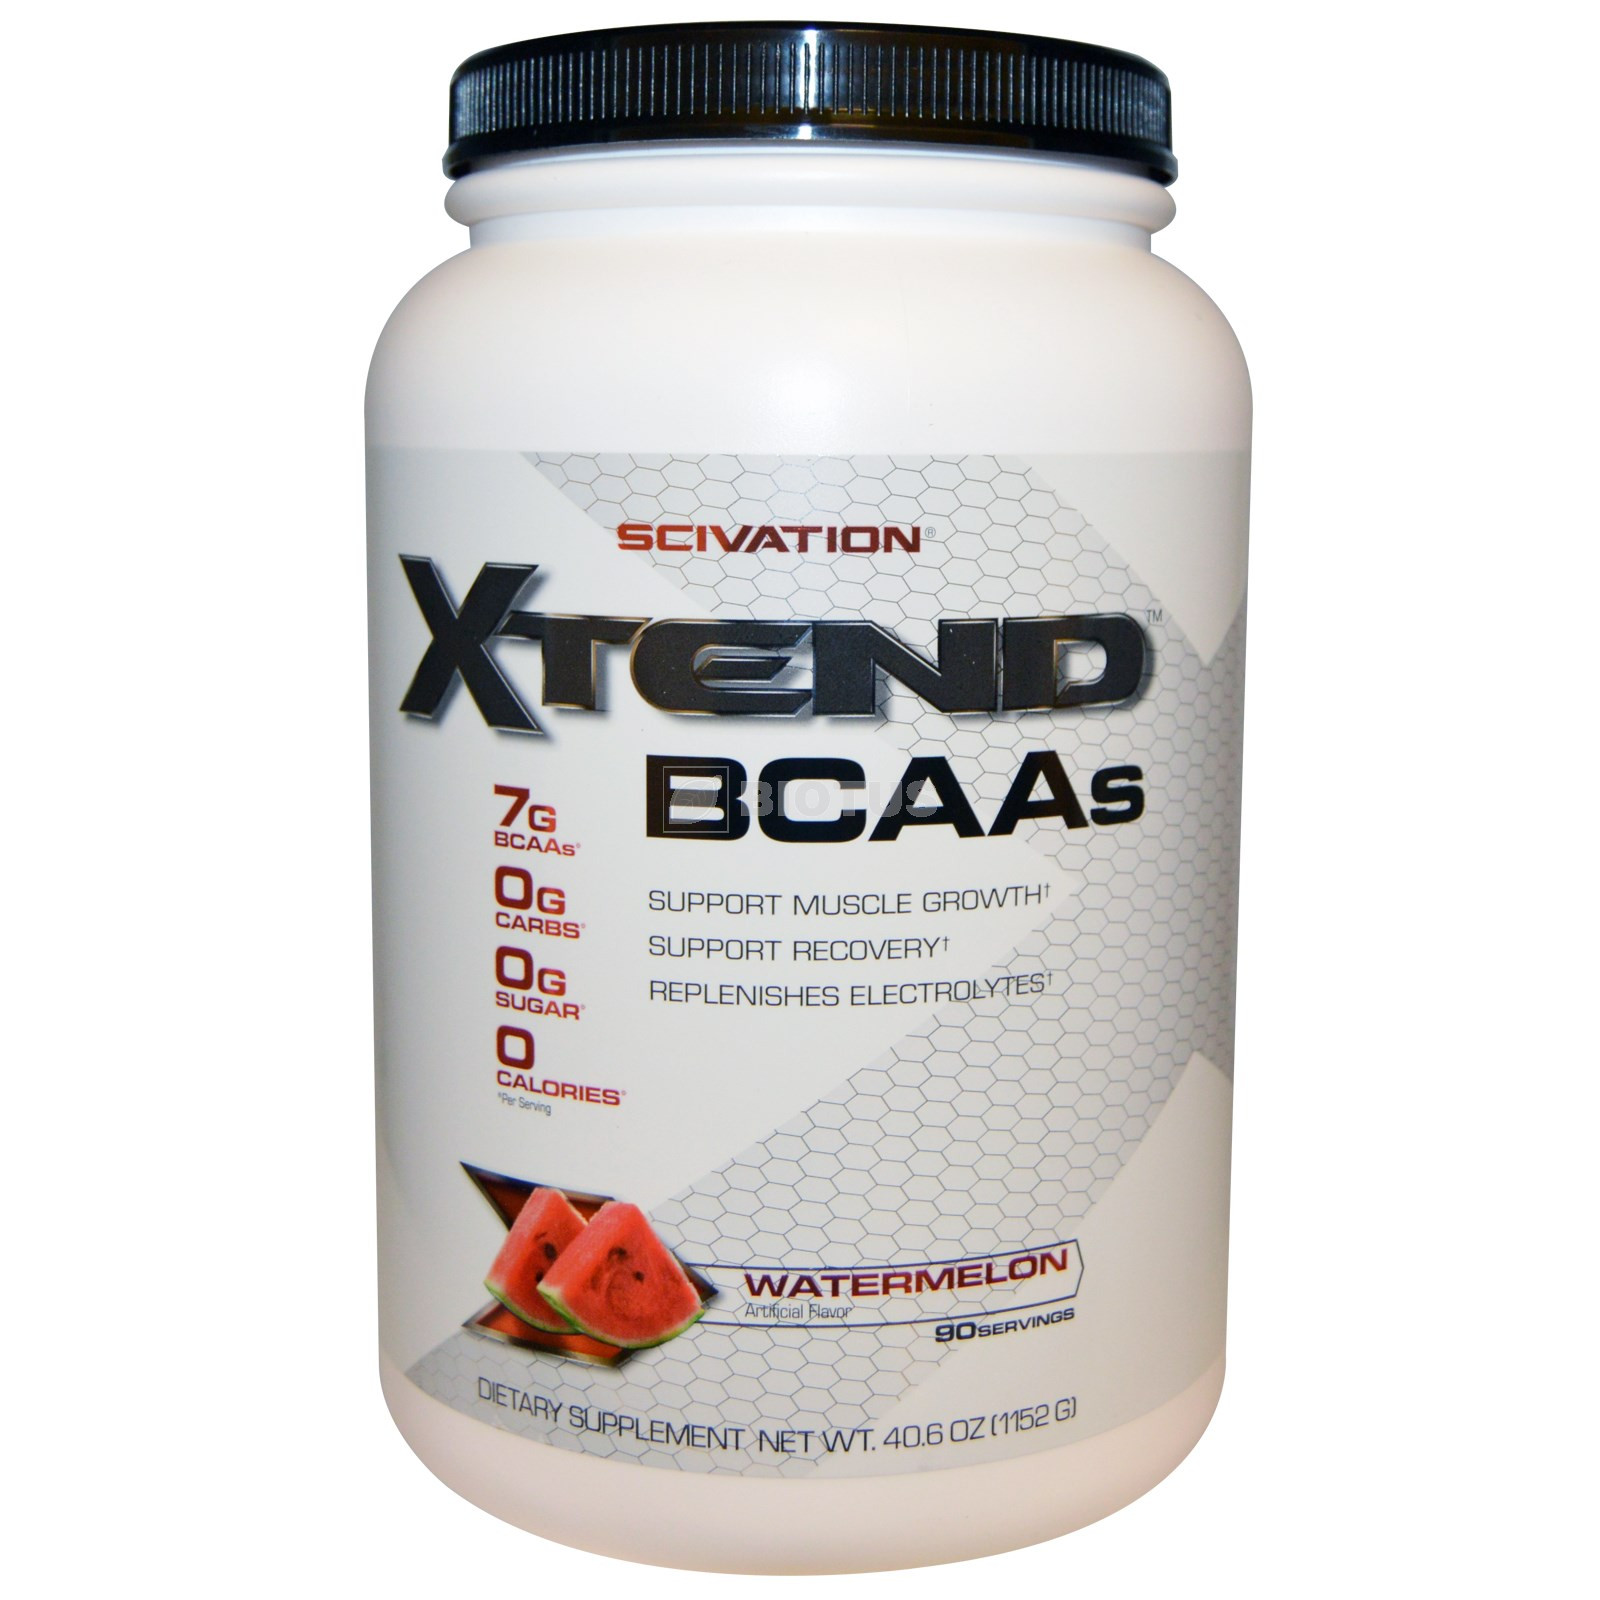 Scivation Xtend BCAAs 1152-1291 гр.